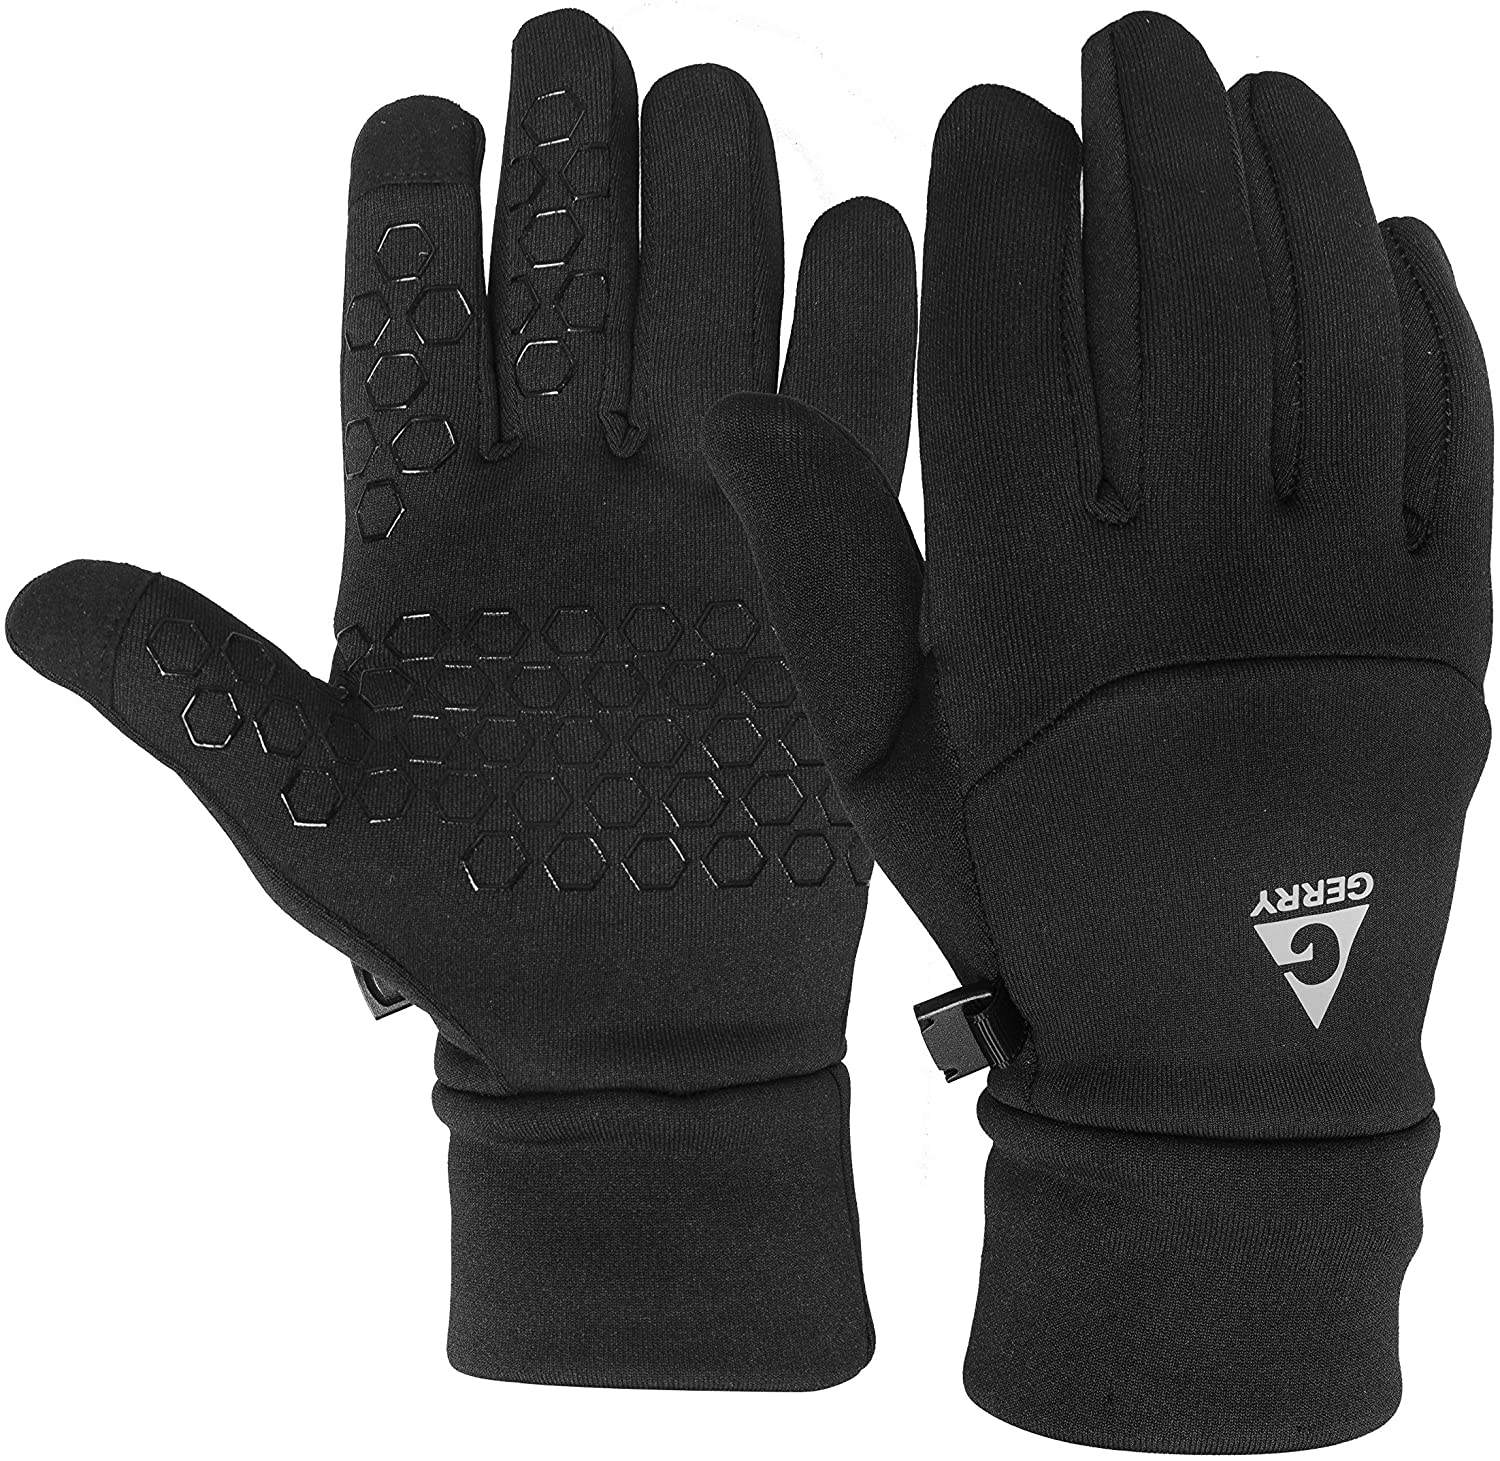 Gerry Women Winter Gloves Touch Screen Anti-Slip Thermal Cold Weather Gloves